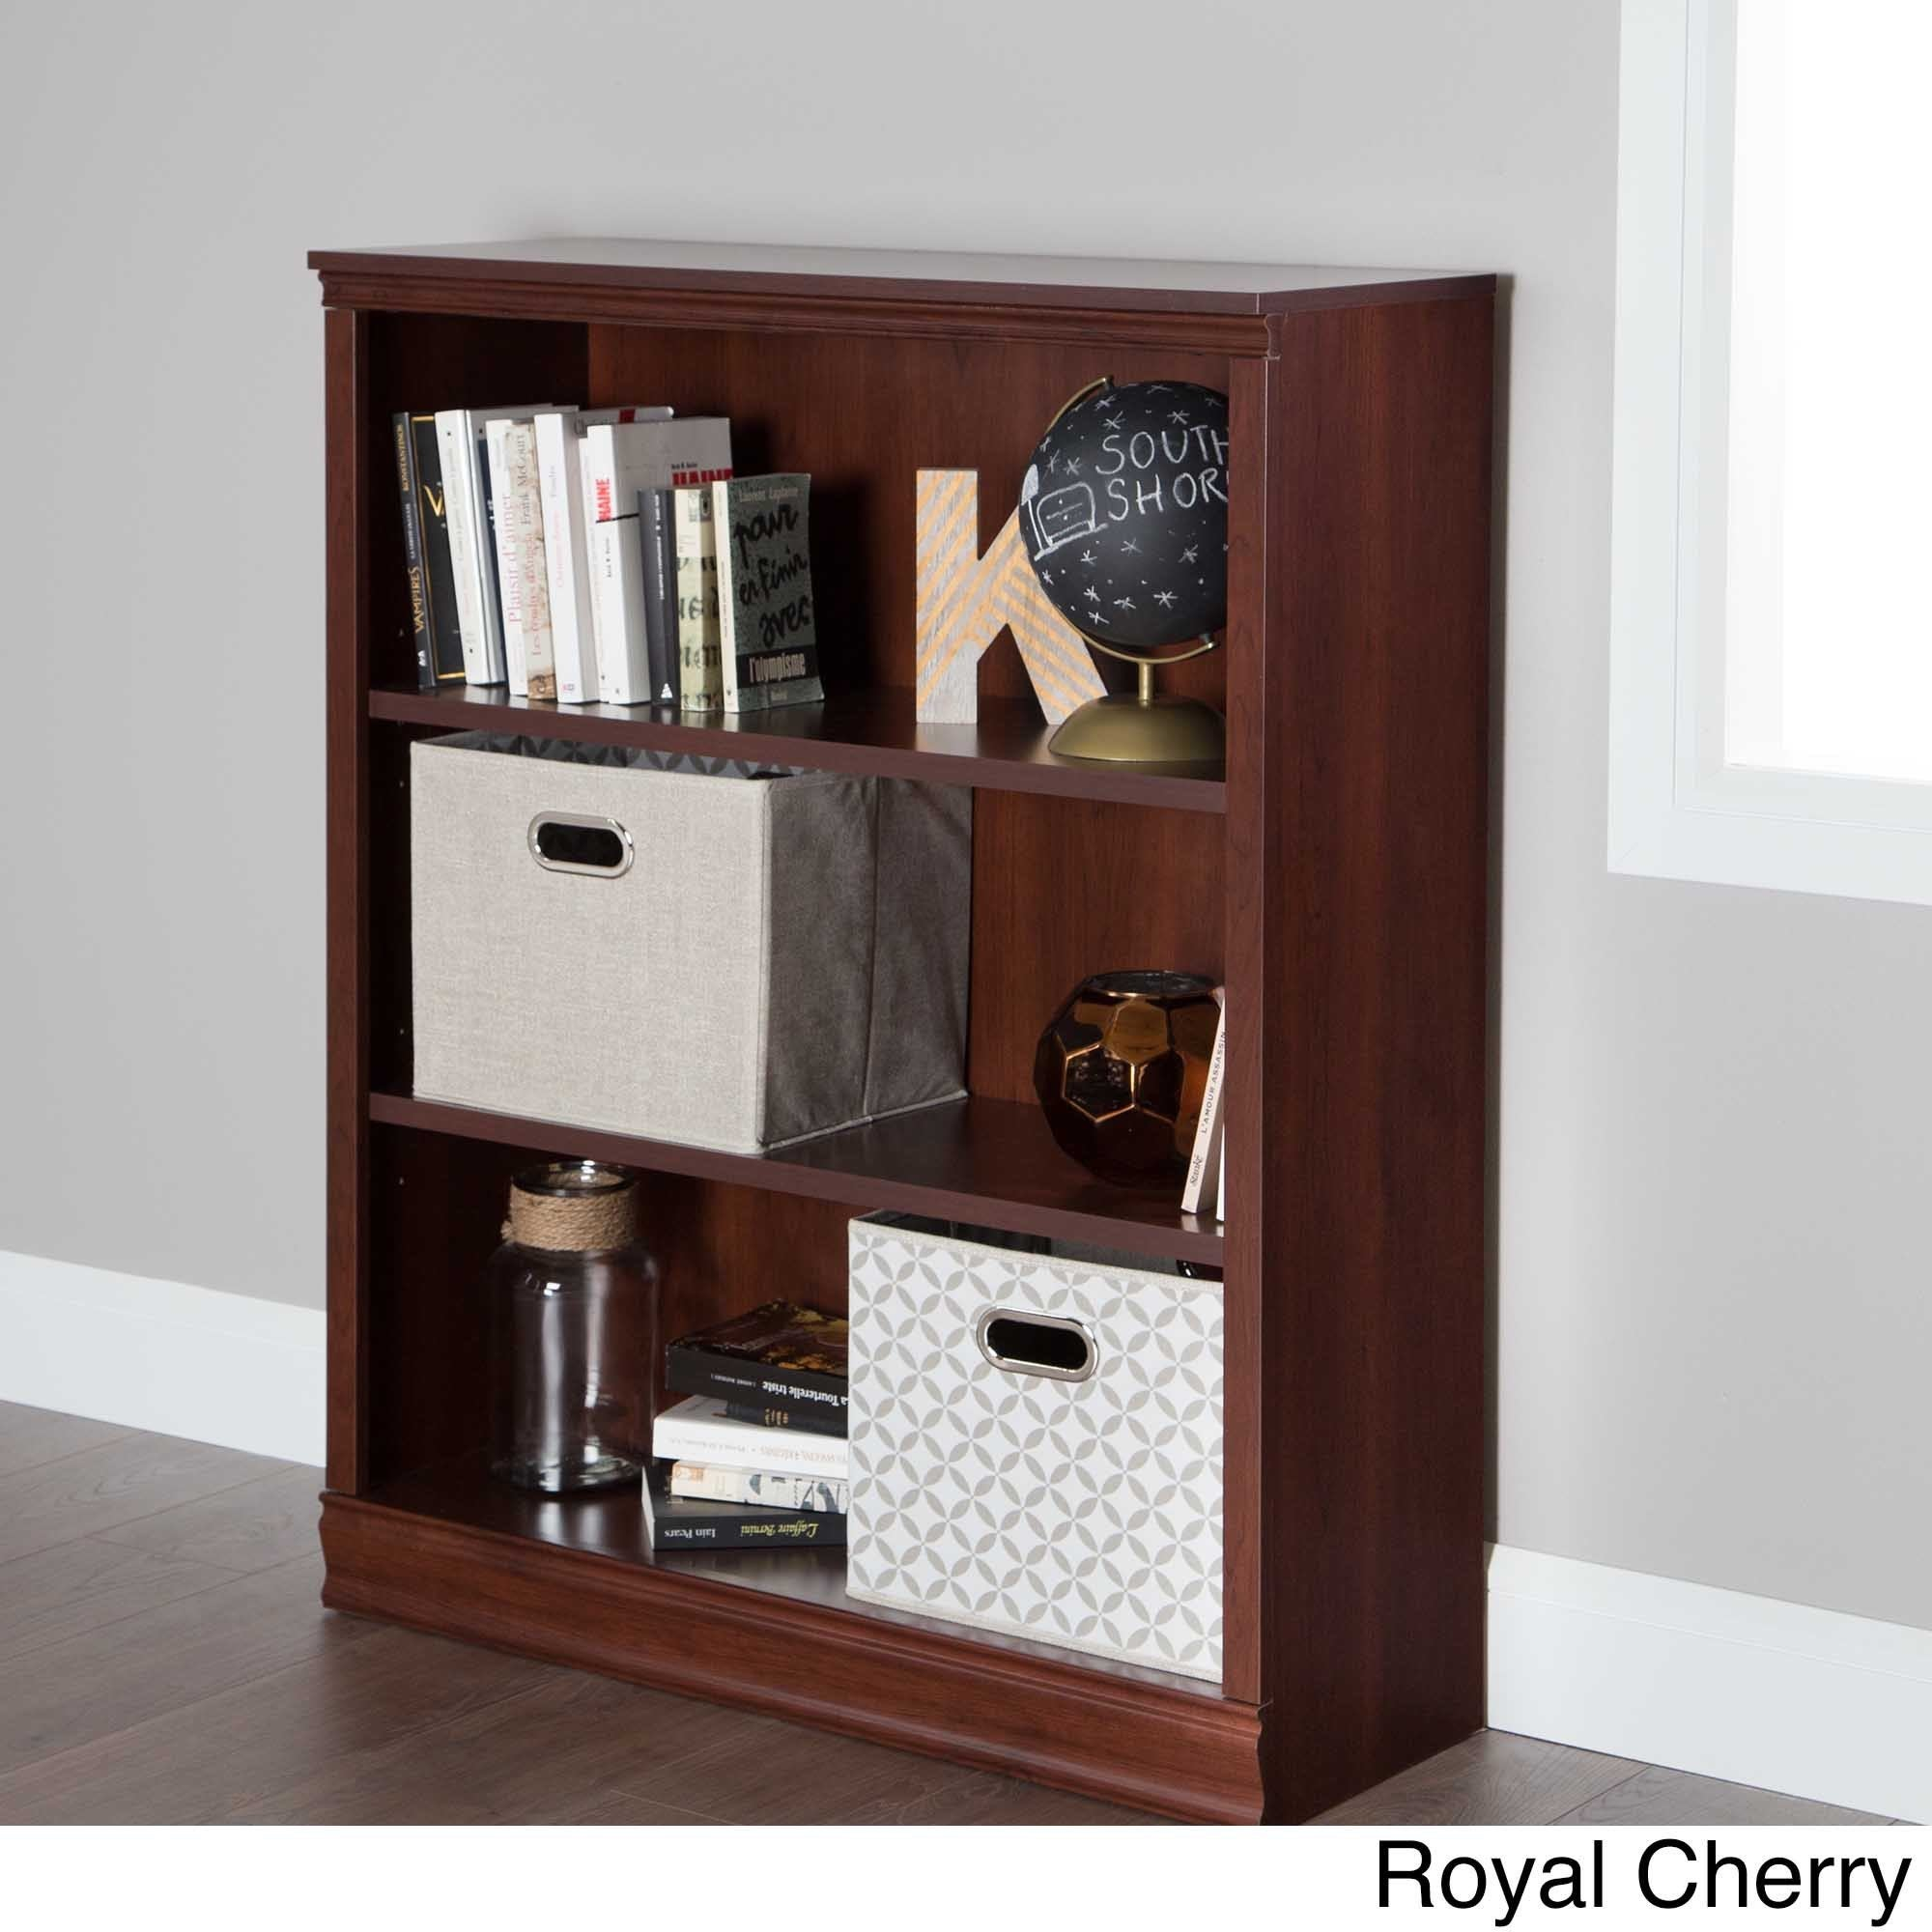 creek shelf mission cherry collection furniture bush three bookcase pin axess antique shore south